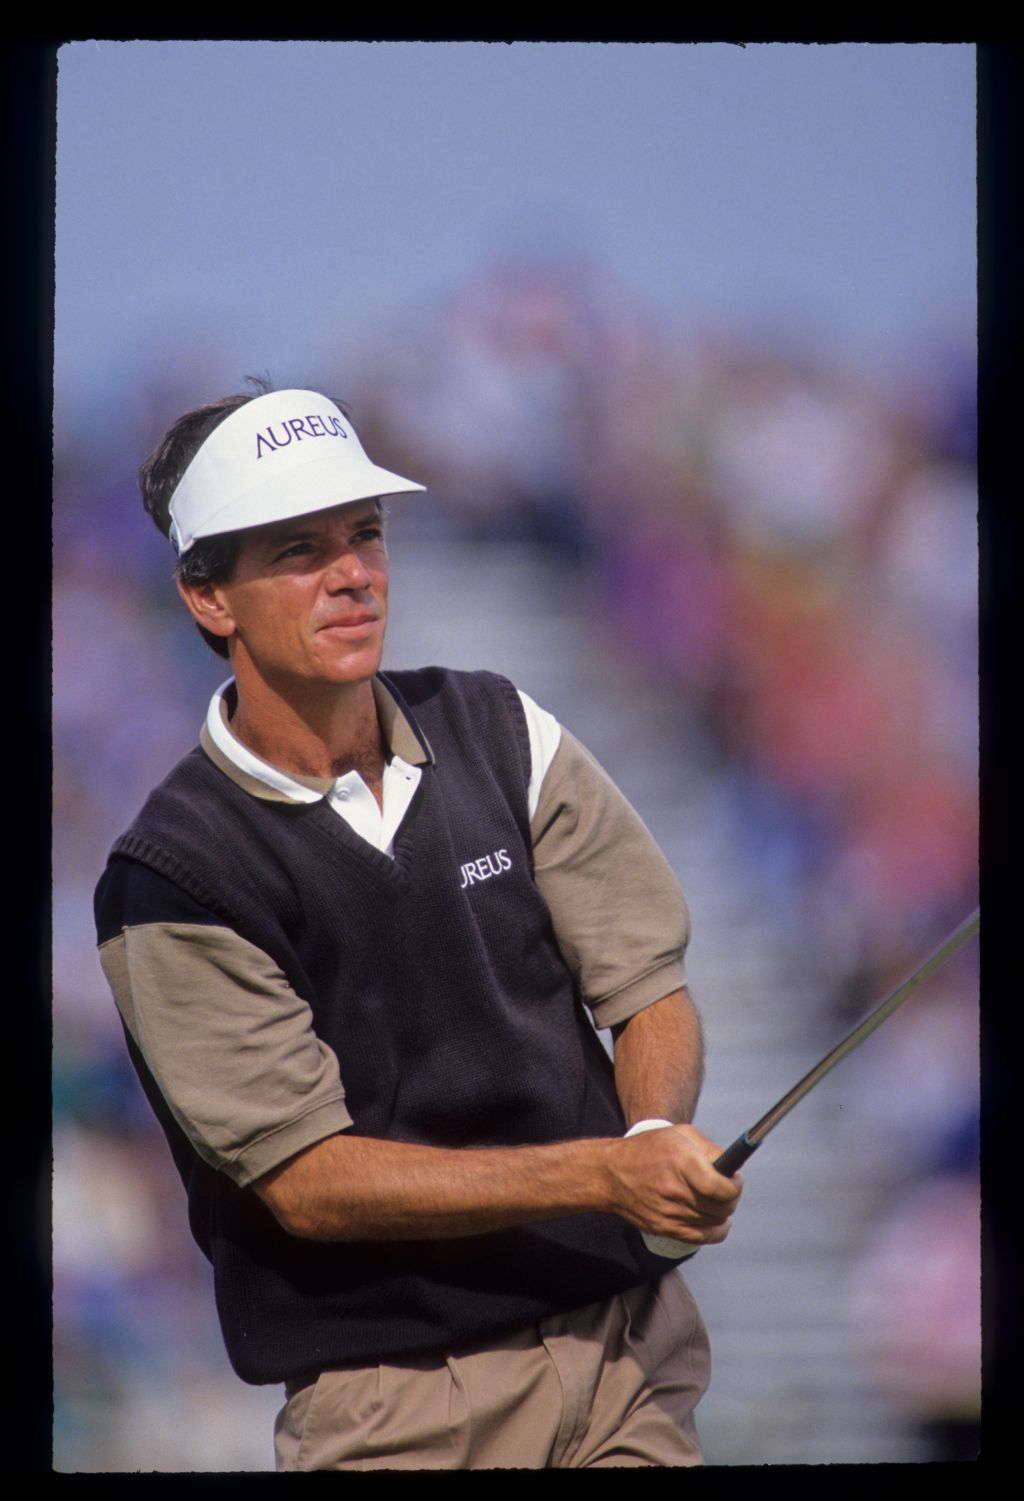 Larry Mize watching his iron shot closely during the 1992 Open Championship